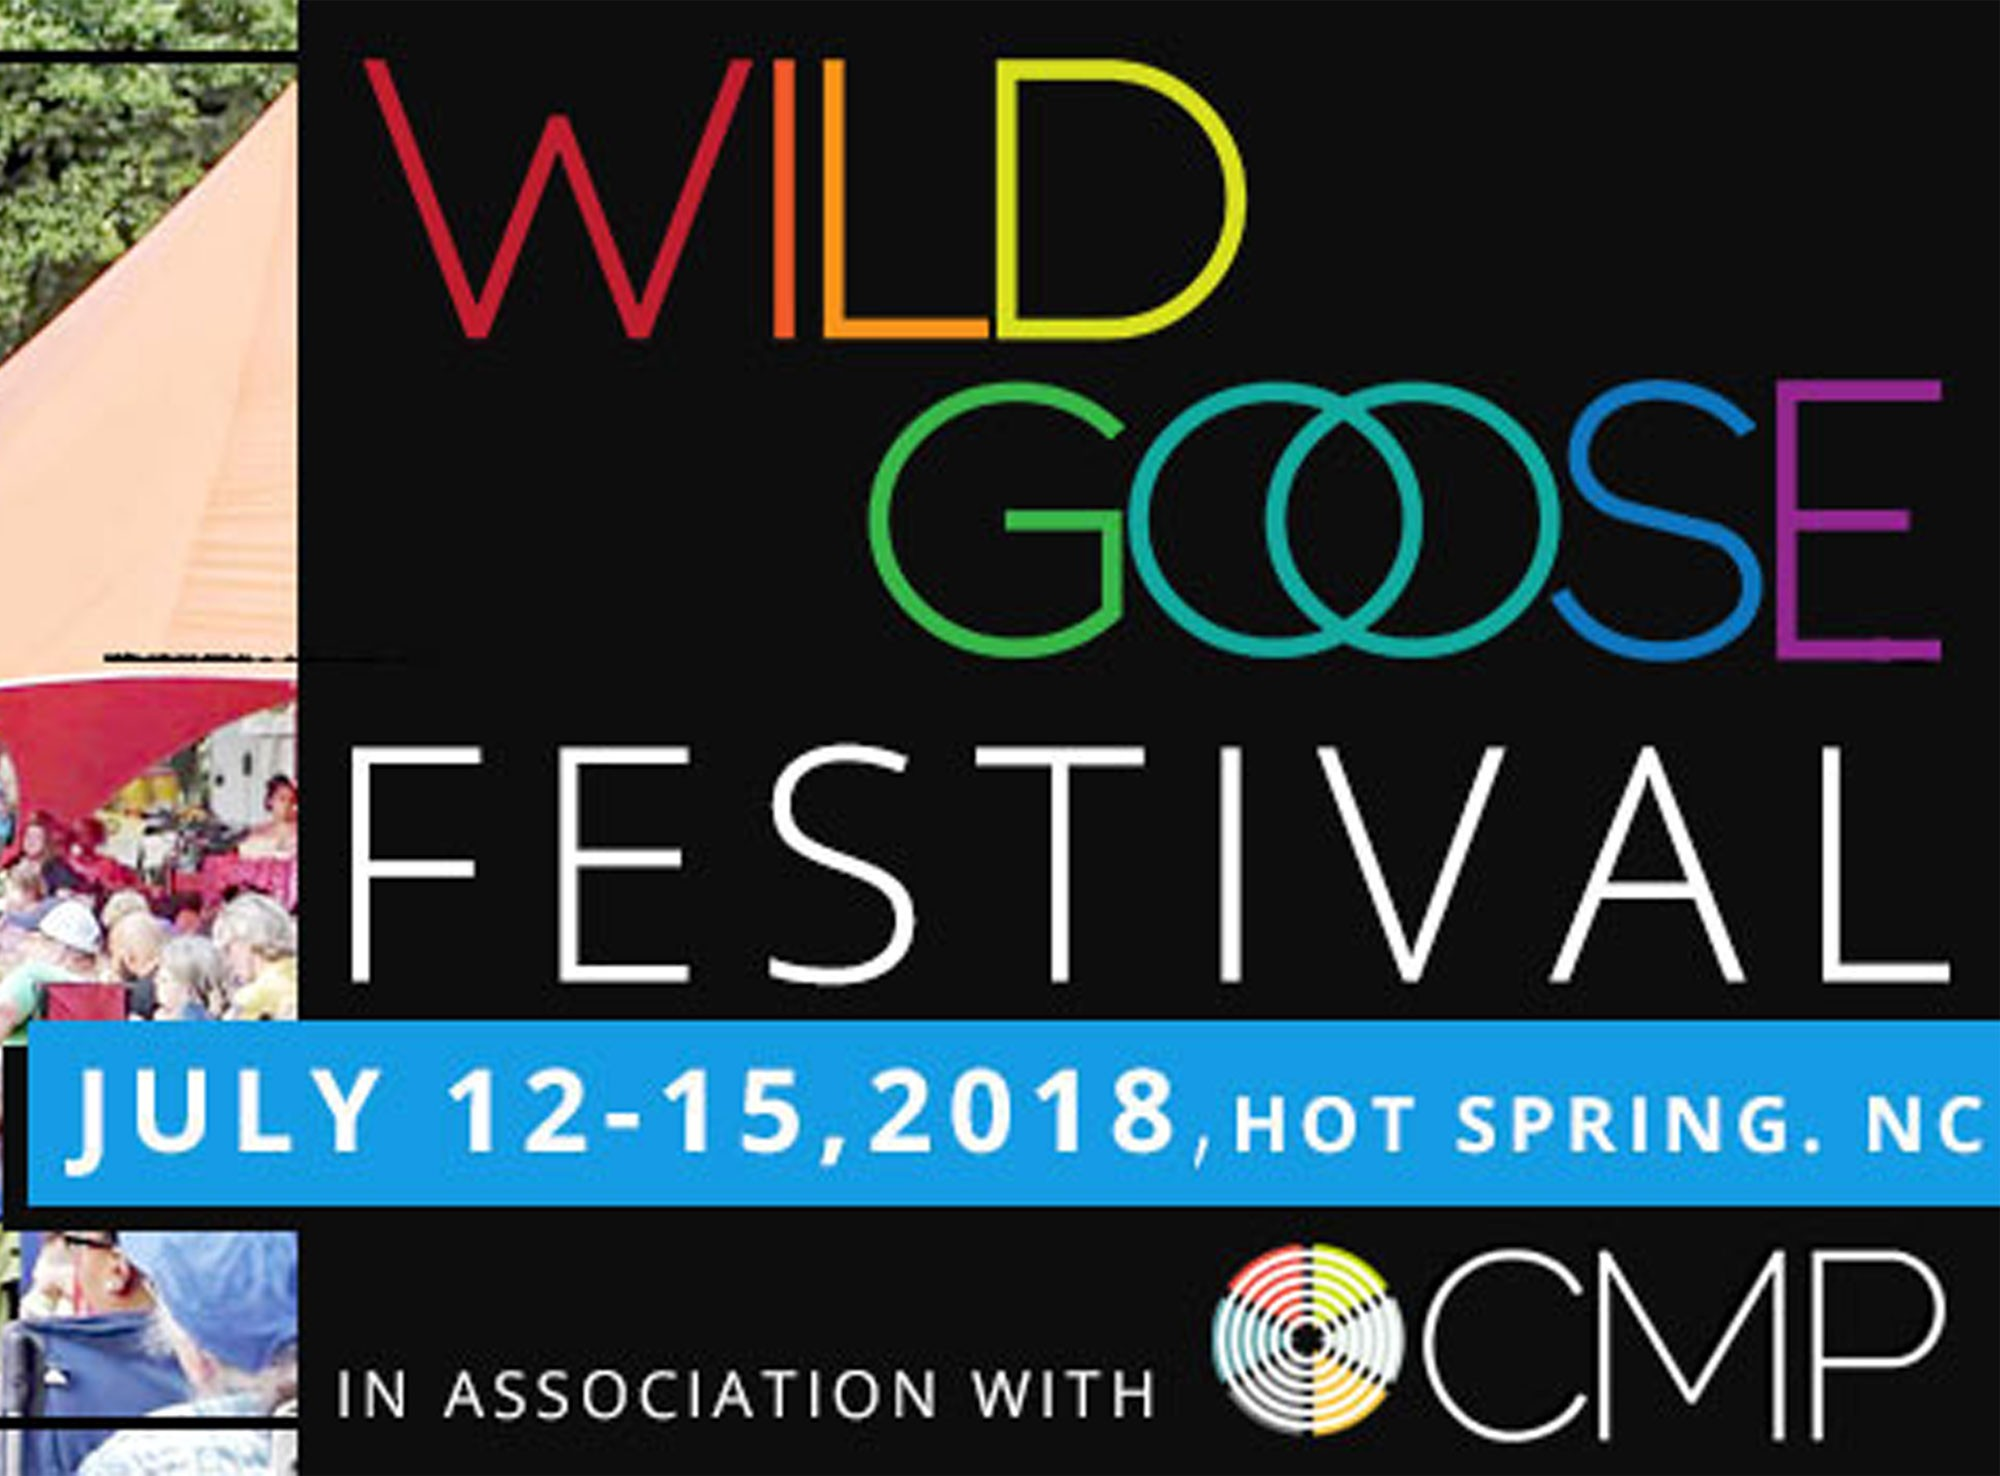 Wild Goose Festival Songwriting Contest